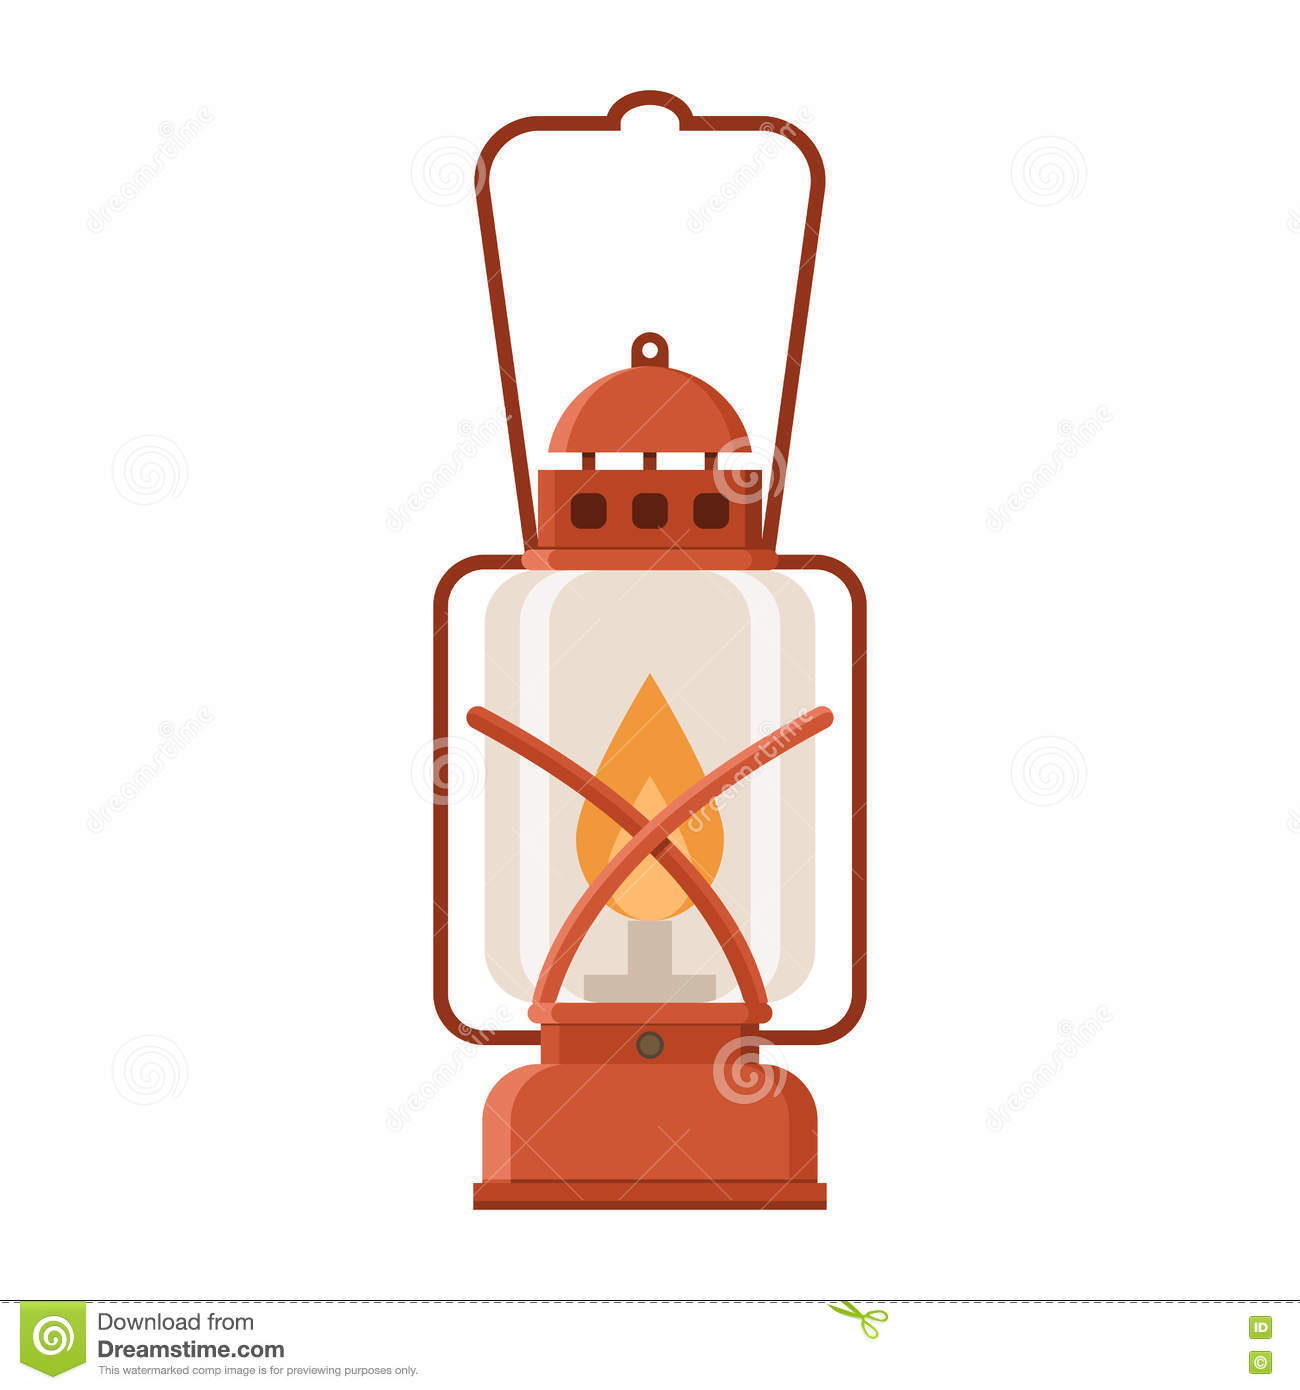 Glowing Camping Lantern stock vector. Illustration of design - 76403879 for Fire Lamp Clipart  34eri